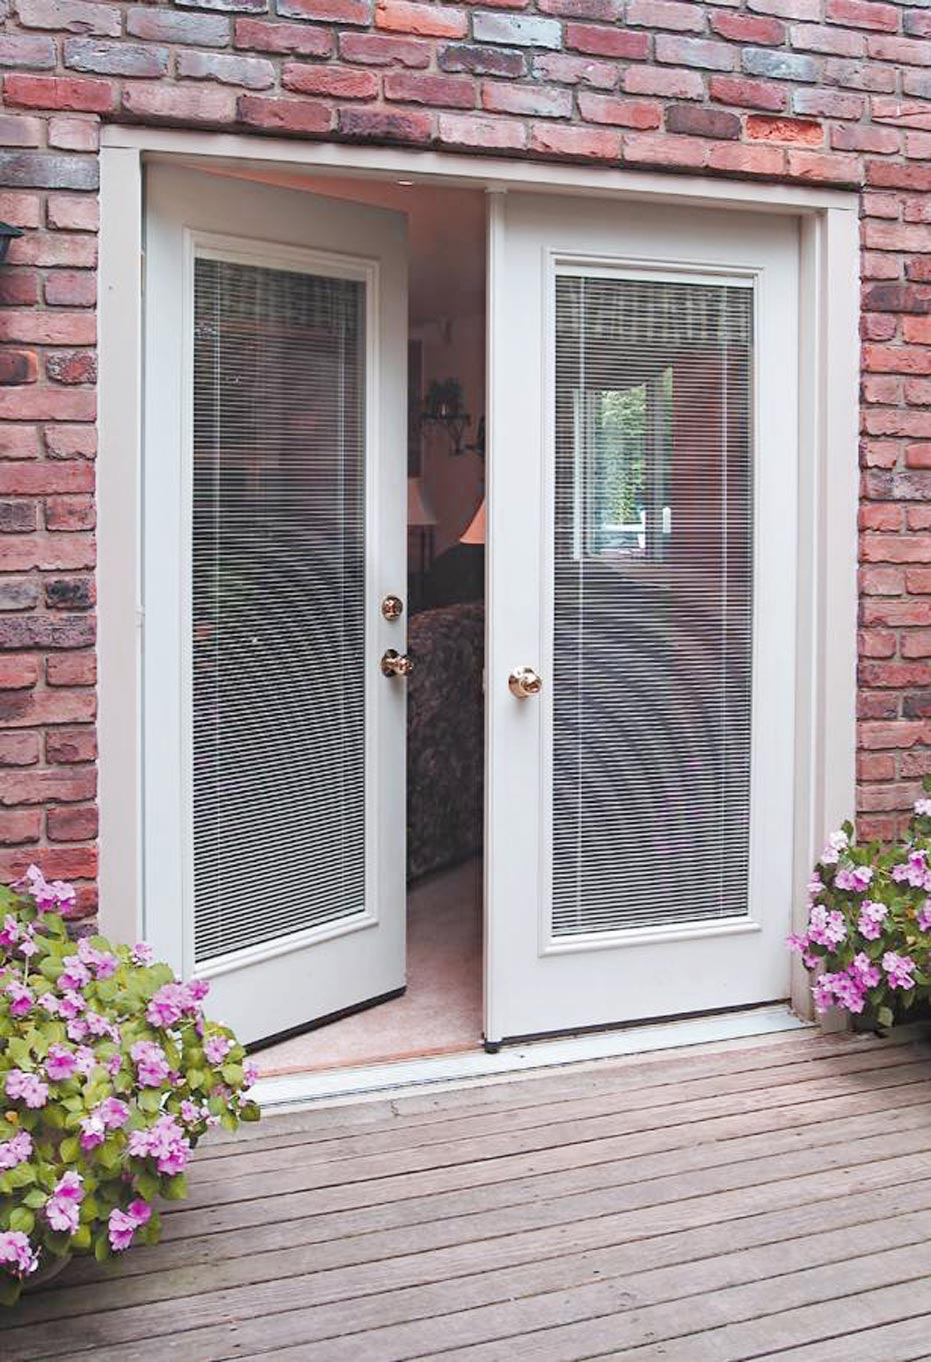 French Doors Exterior With Blinds Gallery - doors design modern